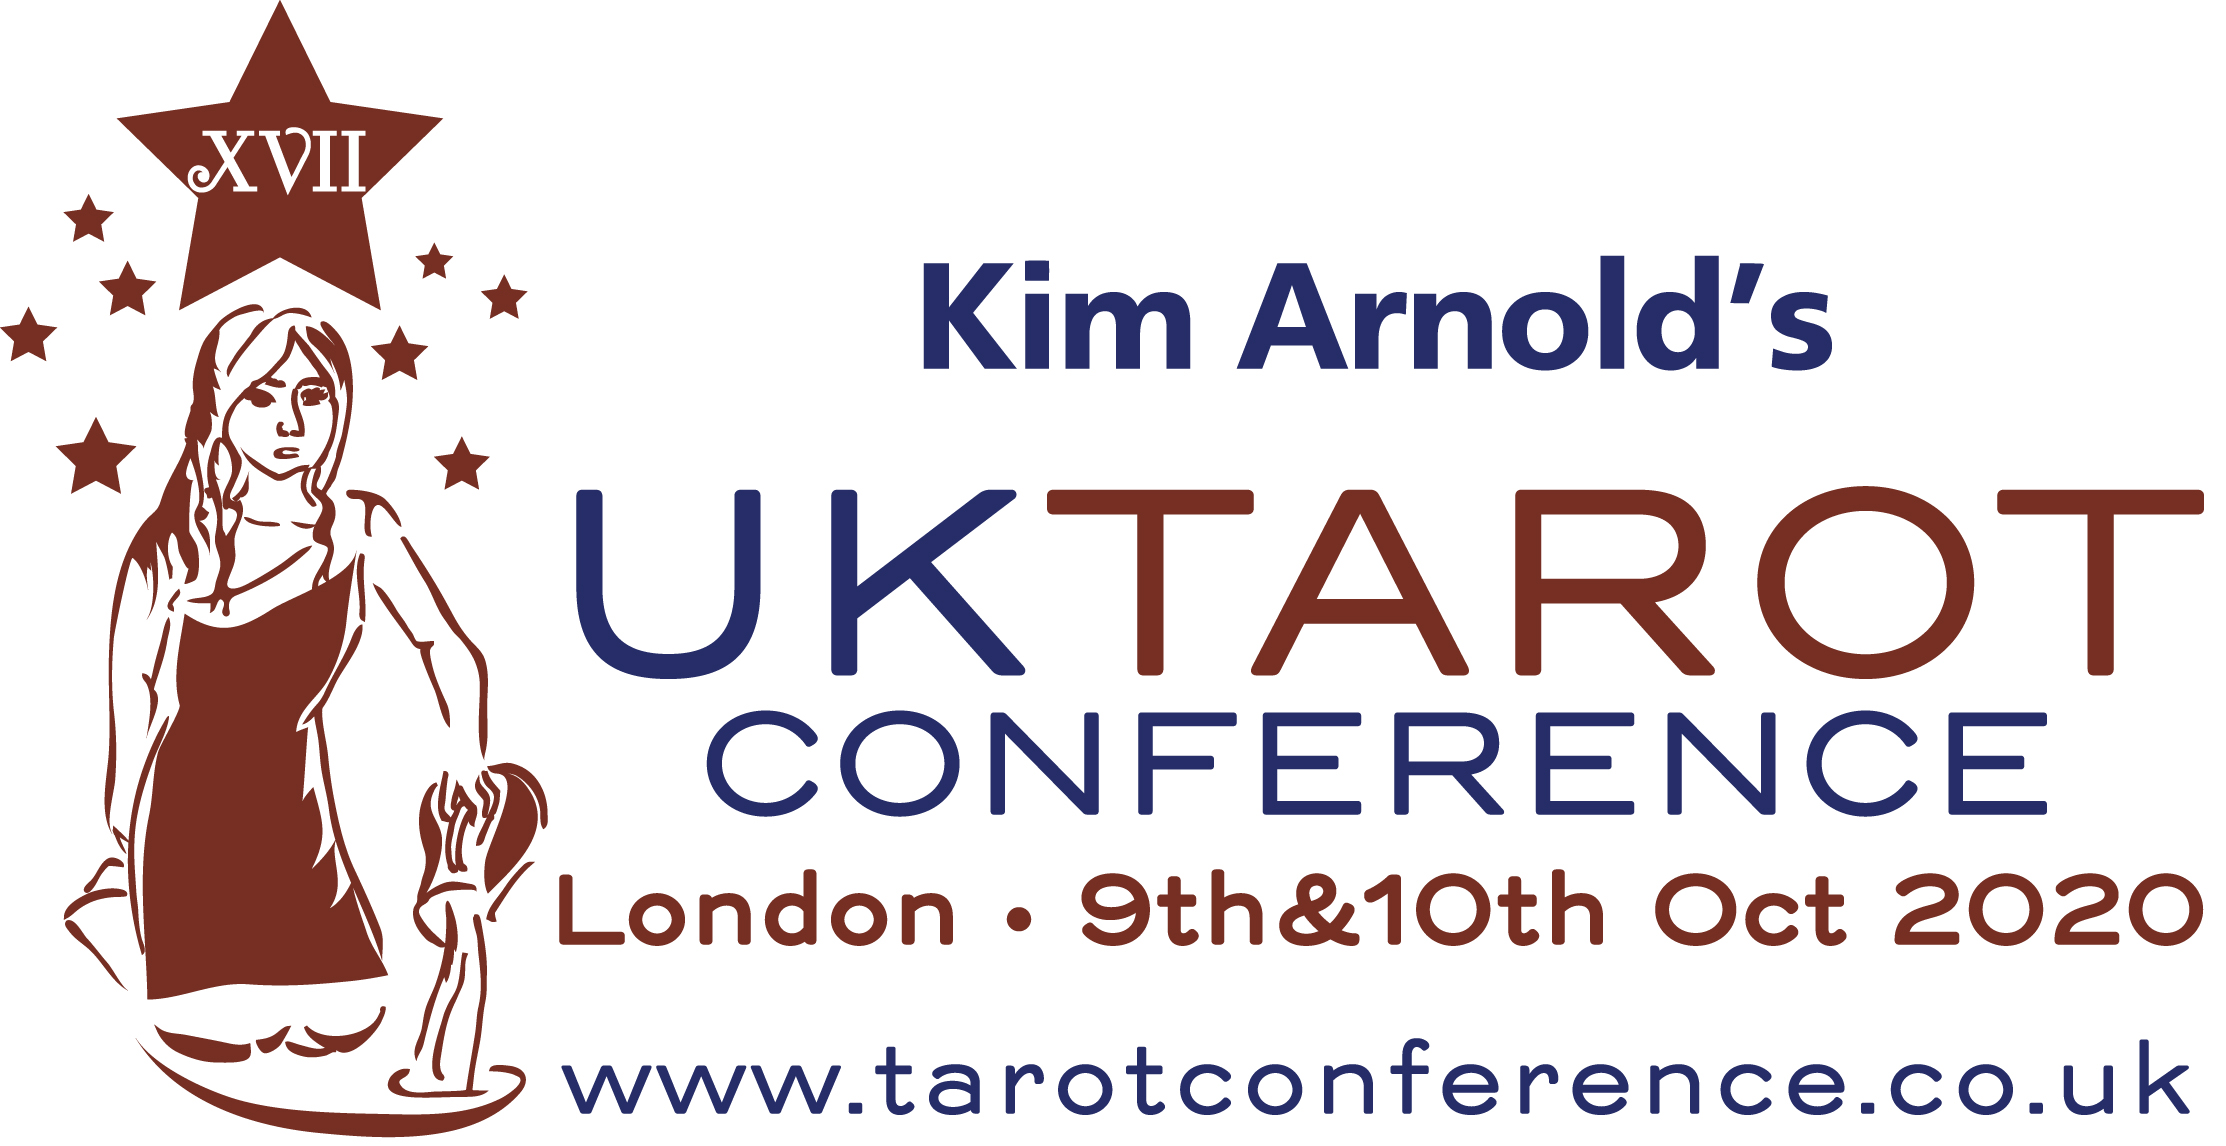 Tarot Conference London 2020